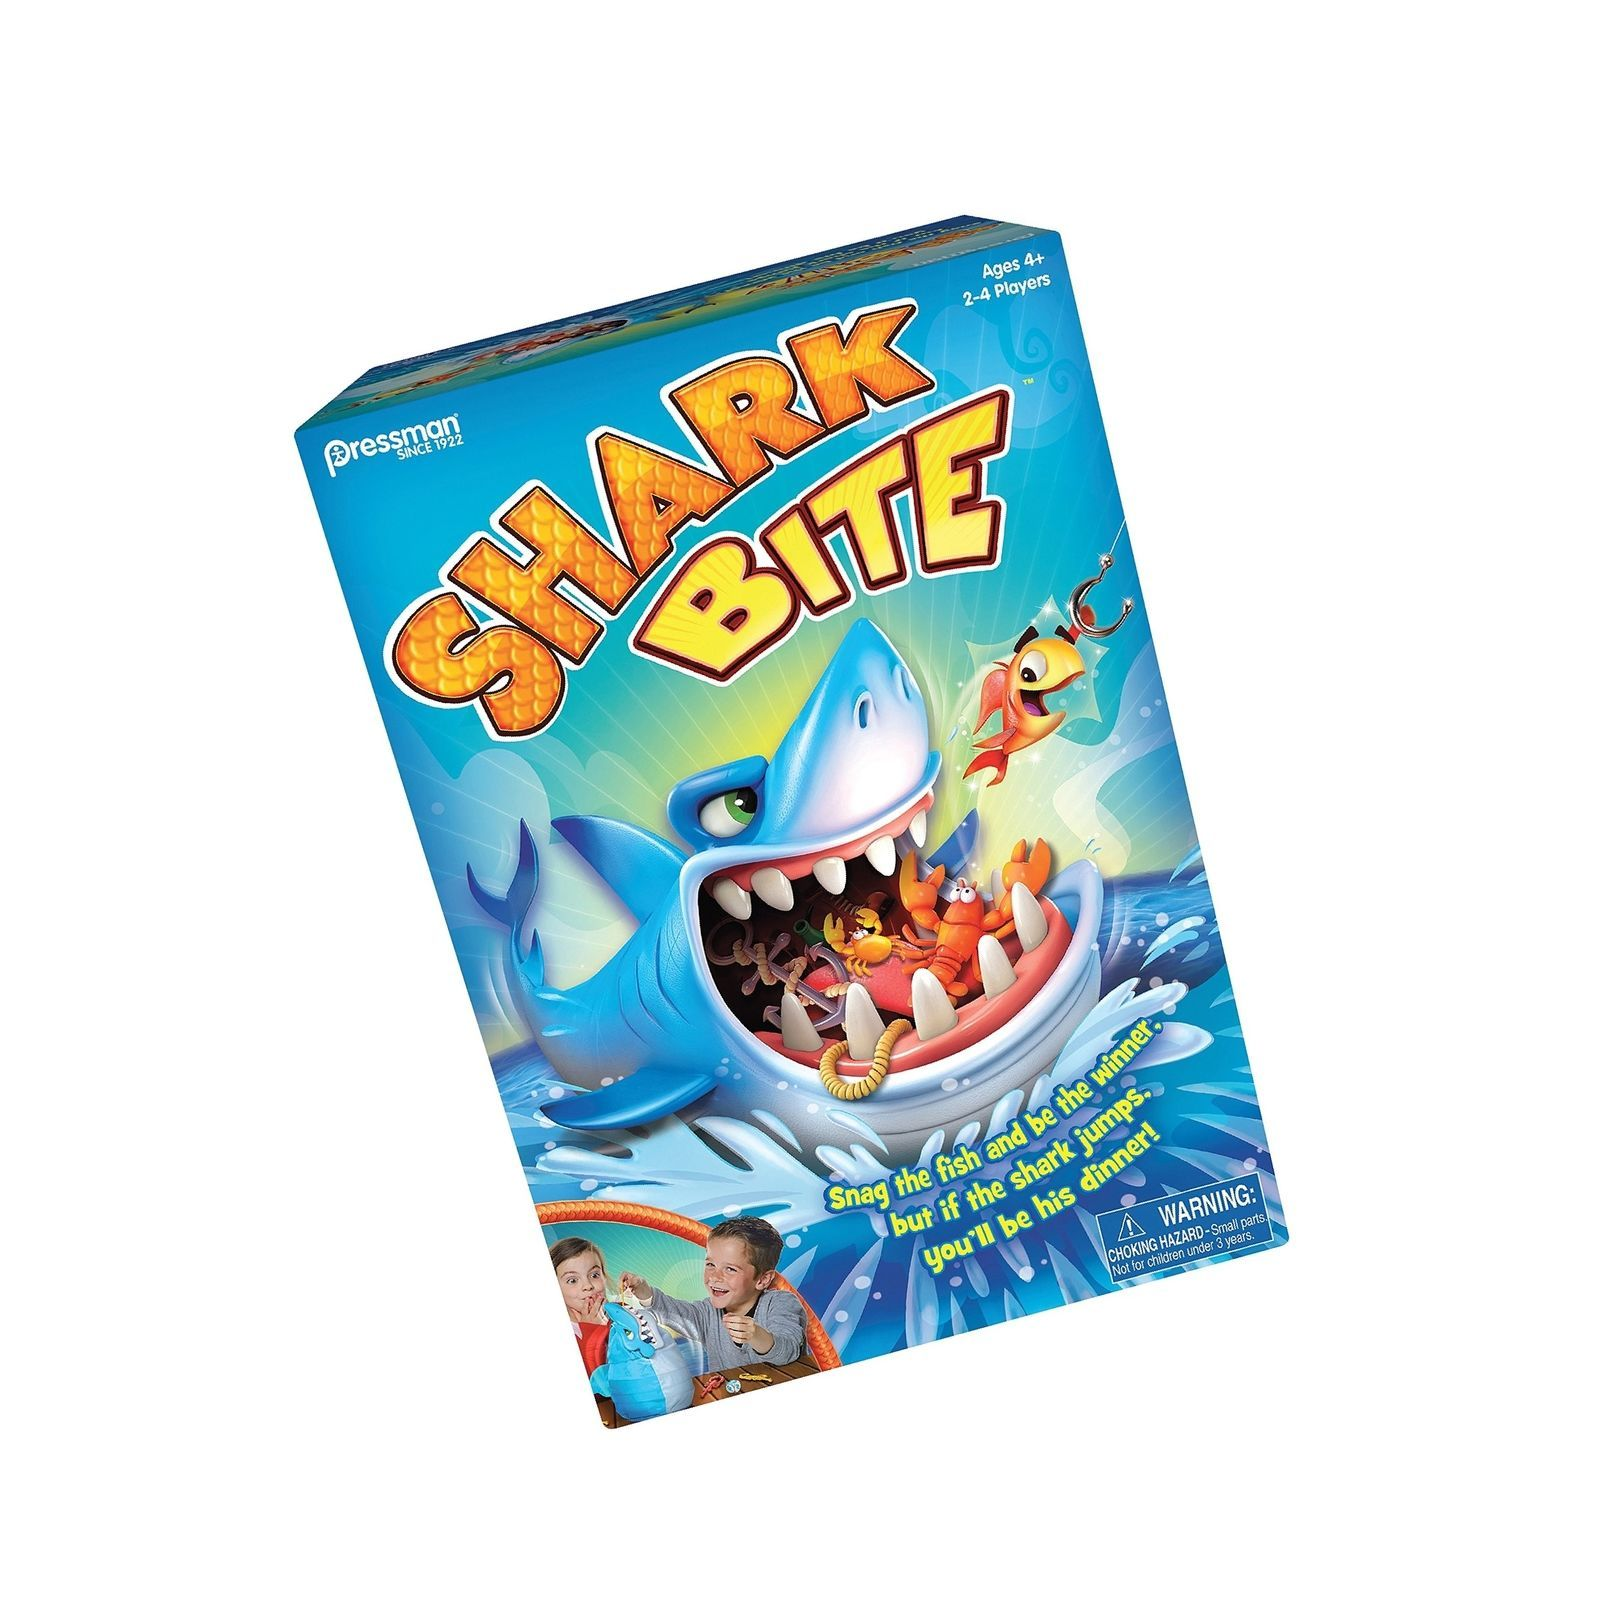 Shark Bite [New] Children's Board Game Pressman Toys